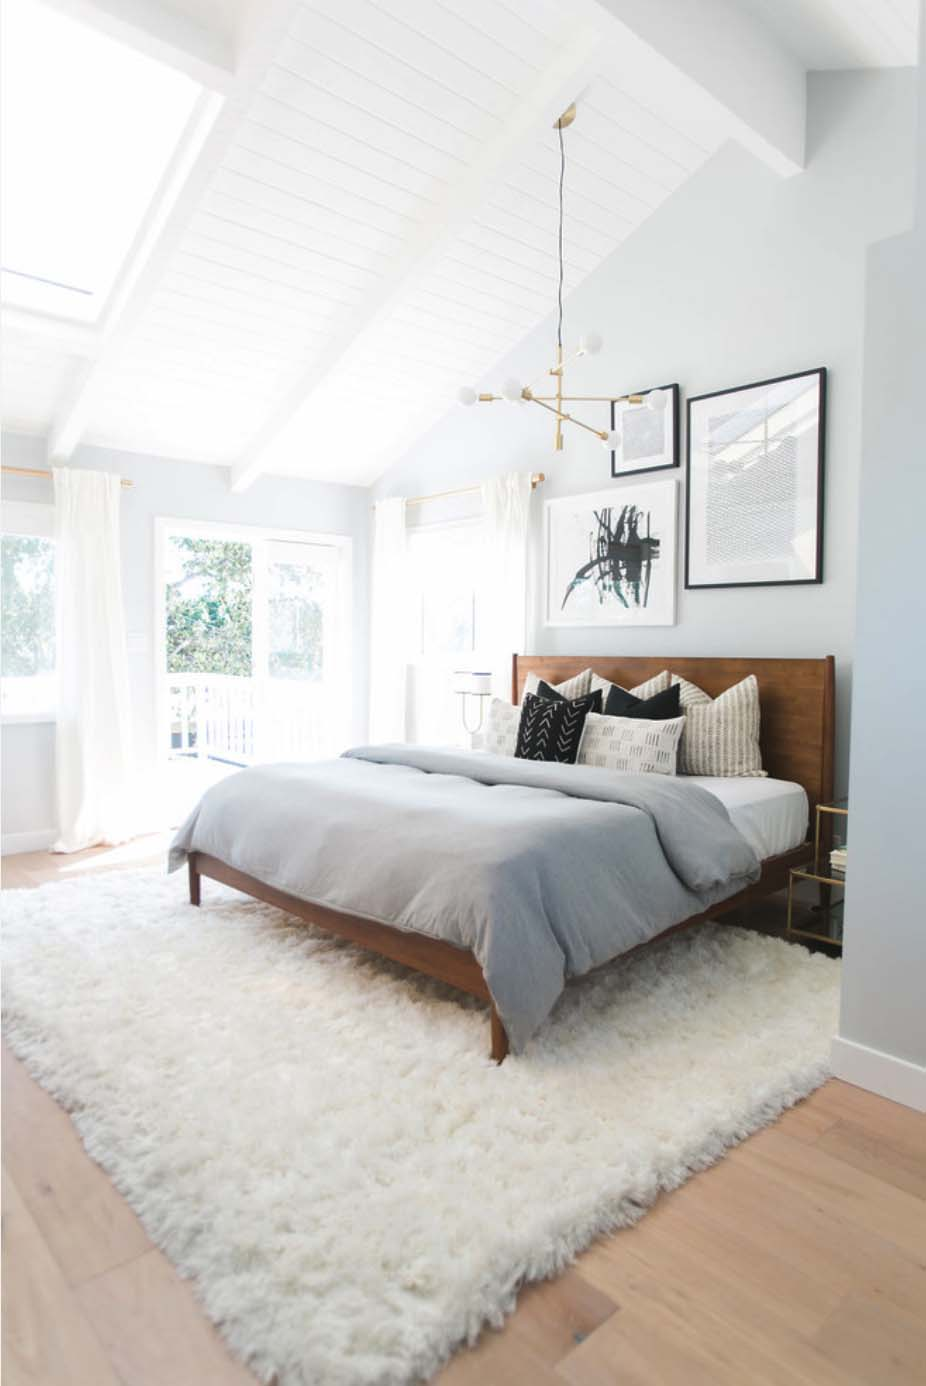 Mock Up Bedroom Design and Inspiration - Squirrelly Minds on Room Decir  id=33345